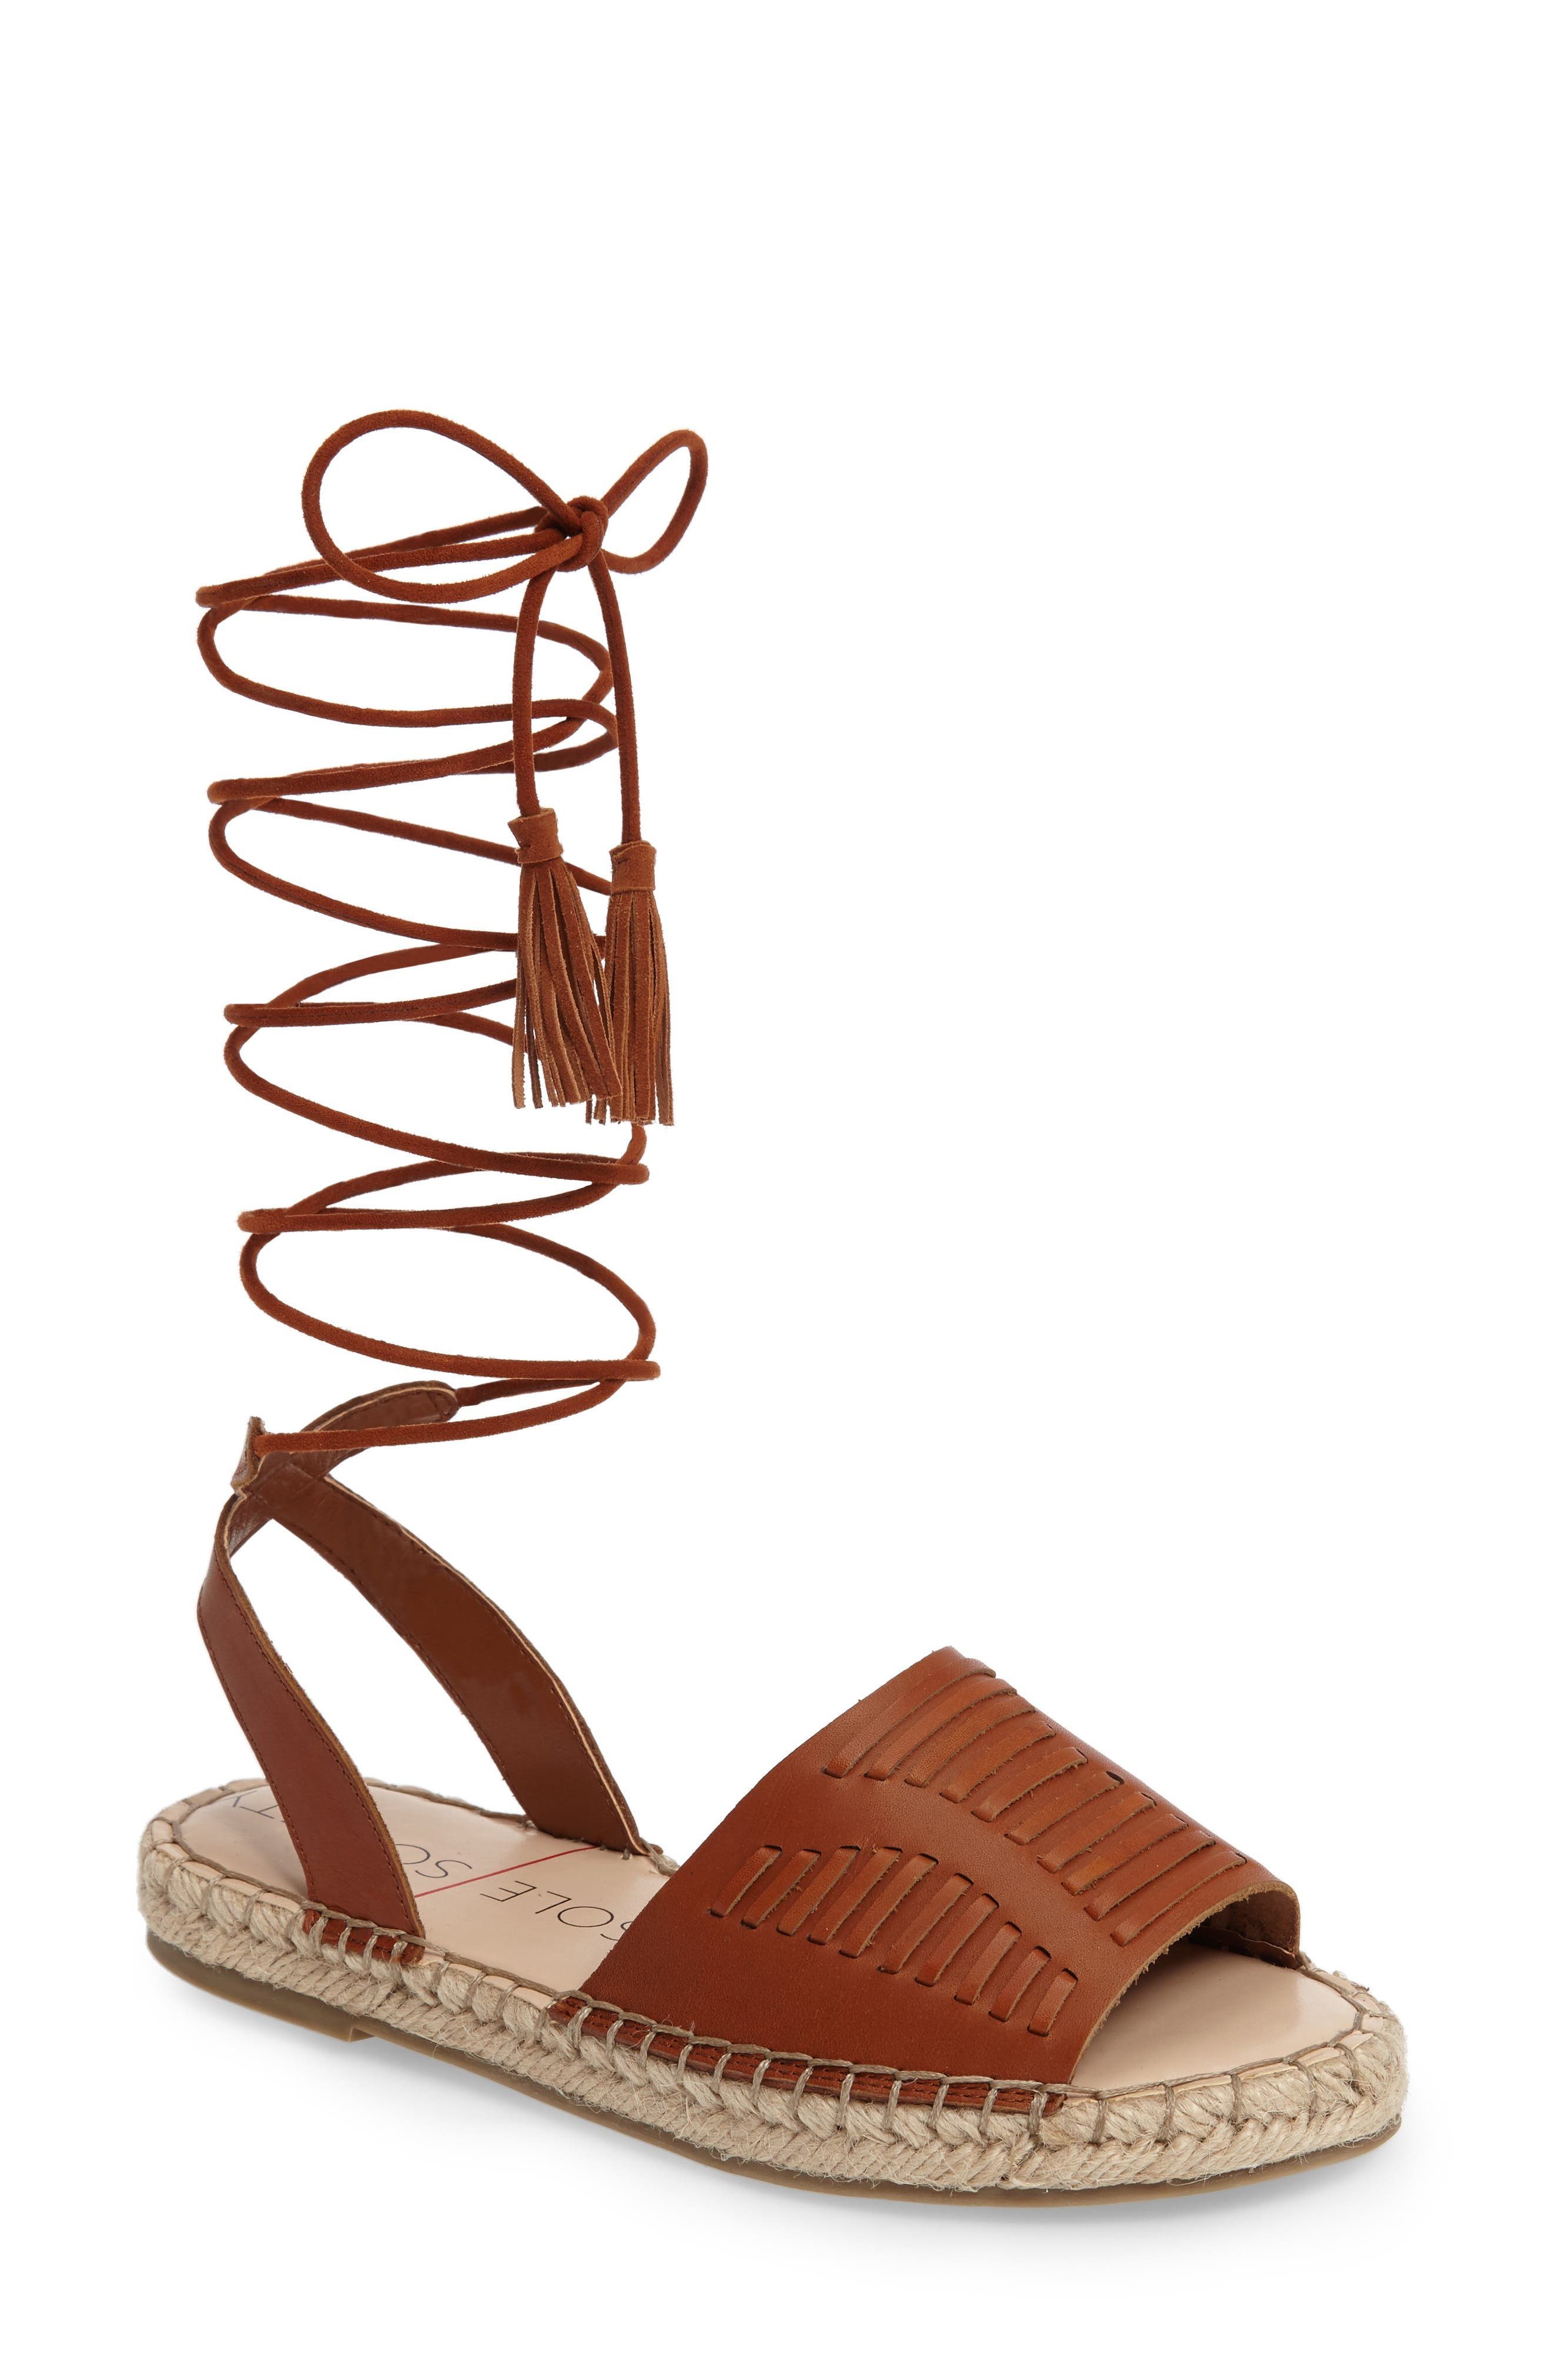 Main Image - Sole Society Clover Ankle Wrap Espadrille Sandal (Women)